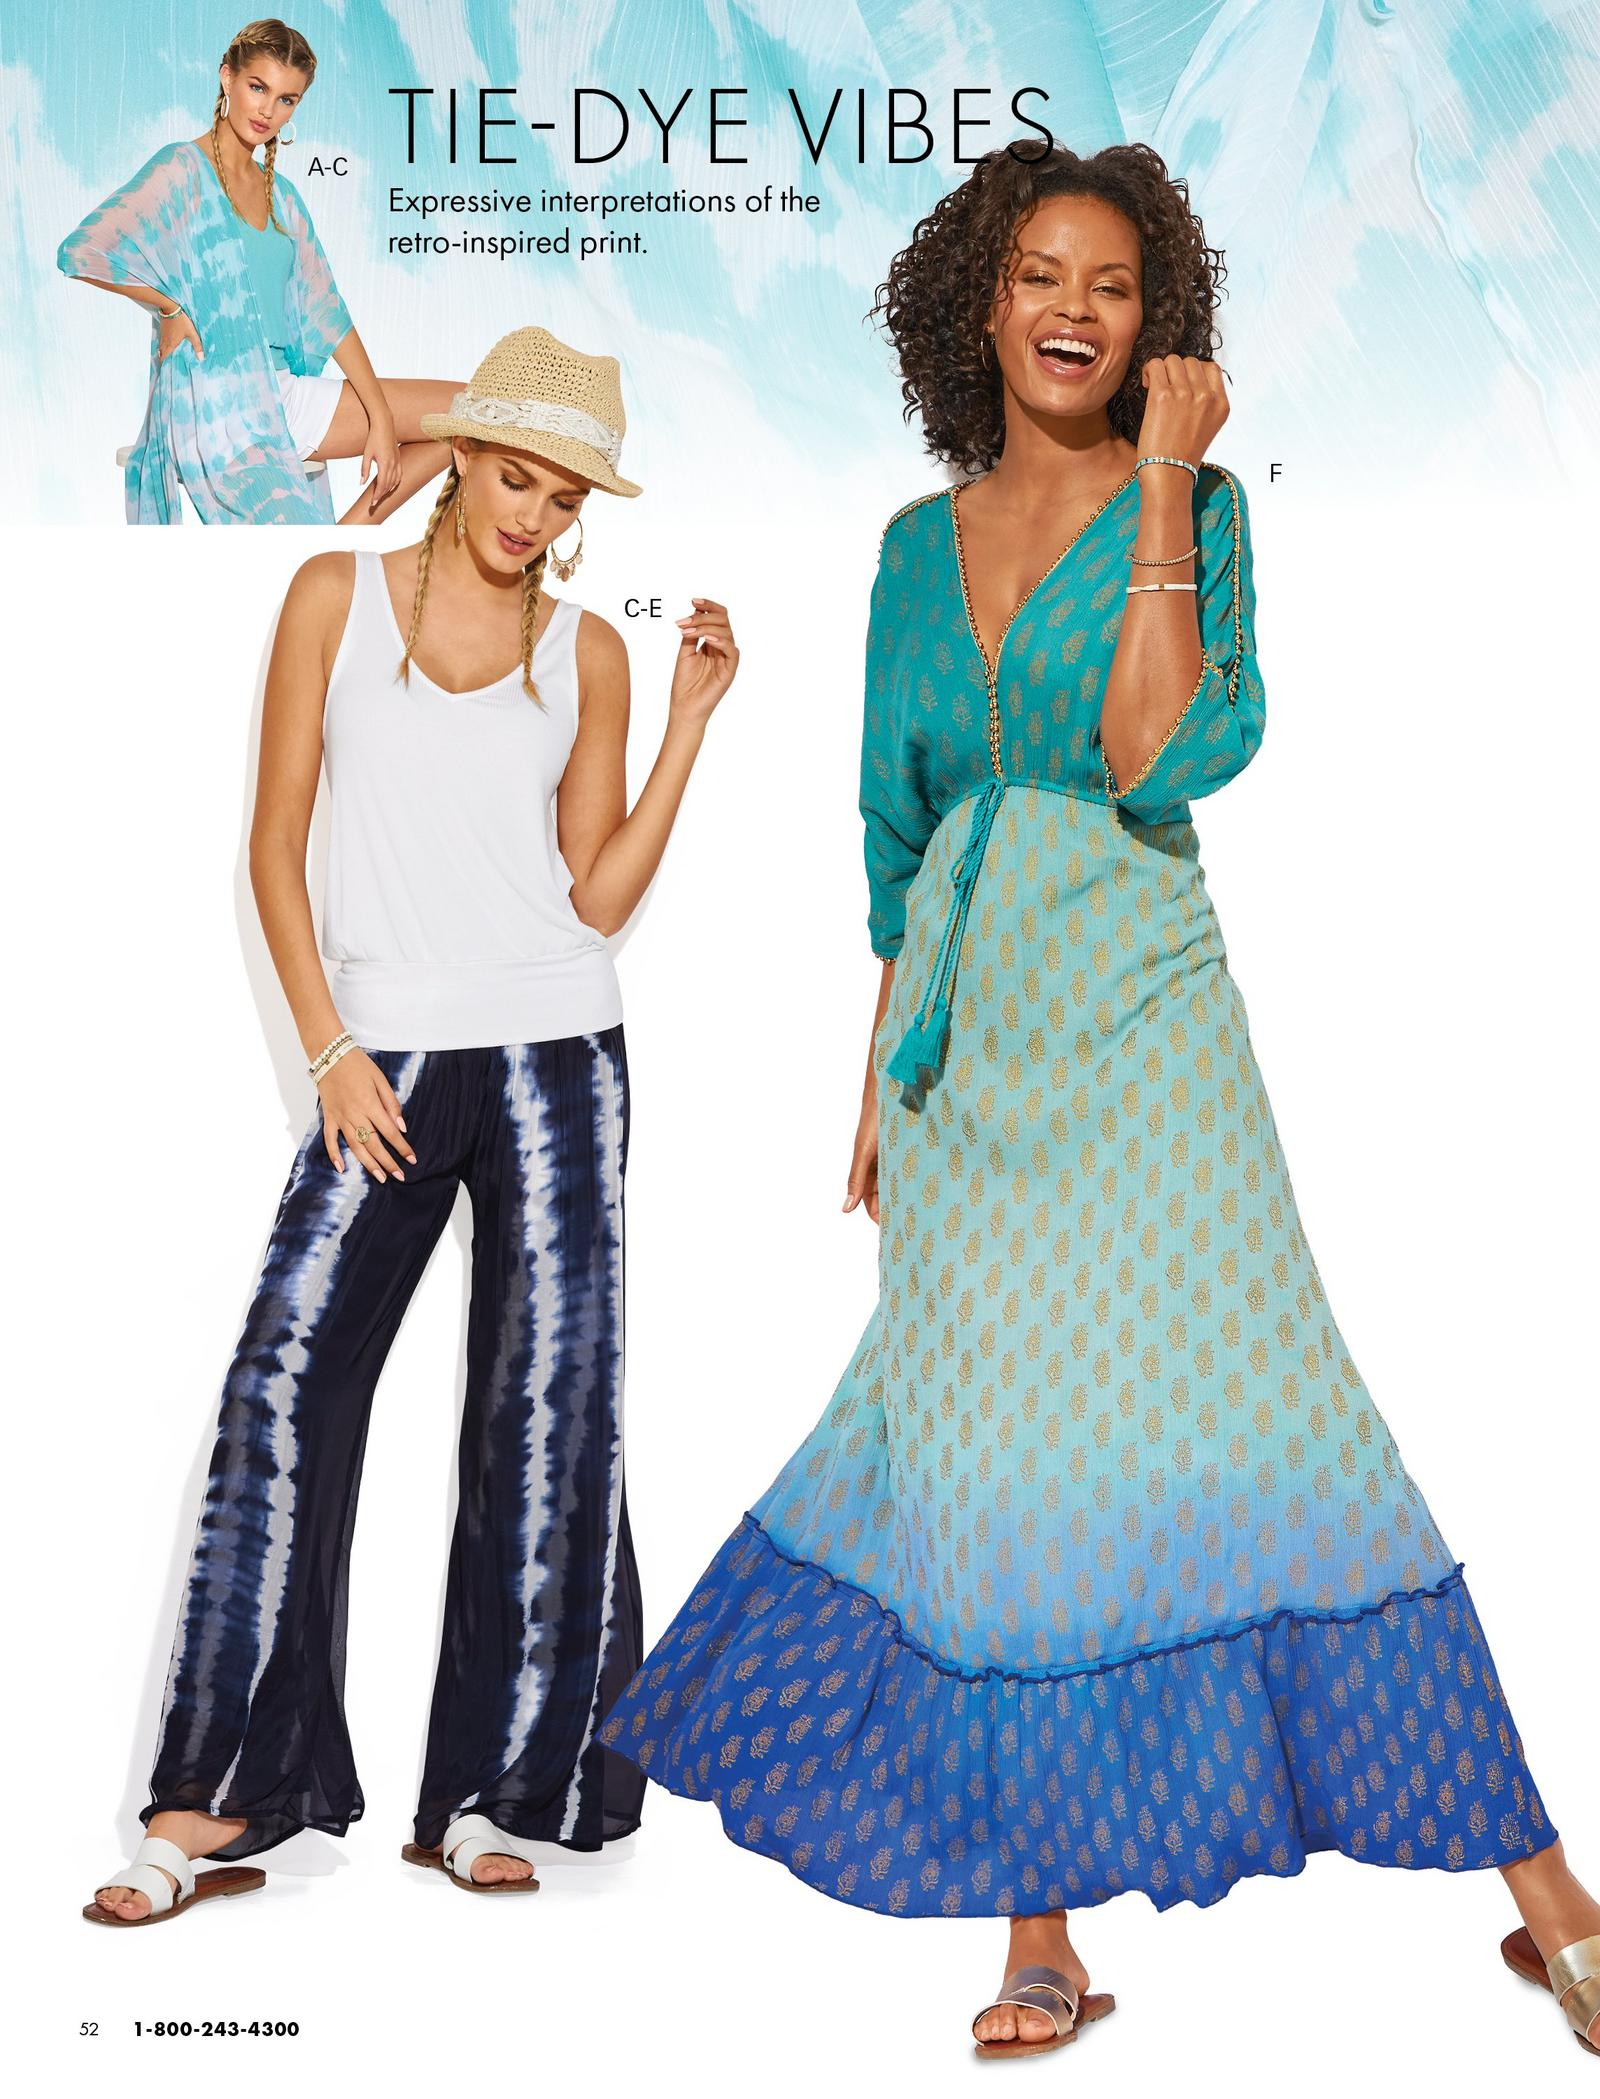 left model wearing a blue and white tie-dye duster, light blue tank top, and white denim shorts. middle model wearing a white blouson sleeveless top, blue and white tie-dye palazzo pants, white double-strap sandals, and straw white lace embellished hat. right model wearing a three-quarter sleeve v-neck blue ombre maxi dress and studded slip-on sandals.